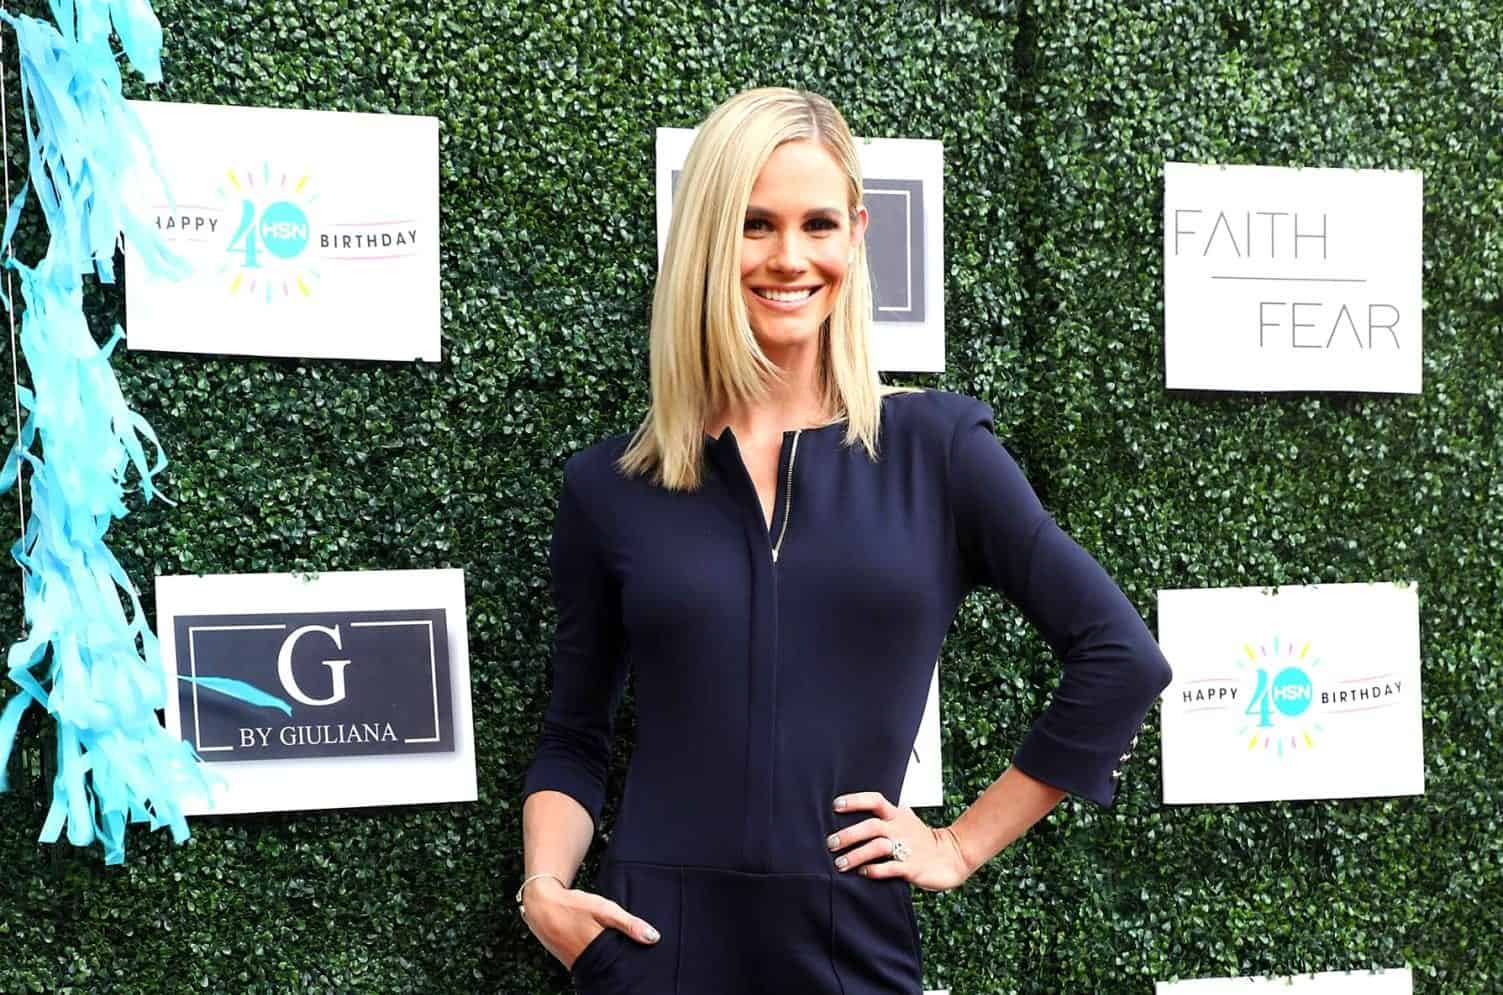 RHOC Alum Meghan King Edmonds Tests Positive for COVID-19 and Confirms Kids Are in the Care of Ex Jim Edmonds, Plus Reveals Symptoms and Treatment and Defends Herself Against Backlash After Miami Trip